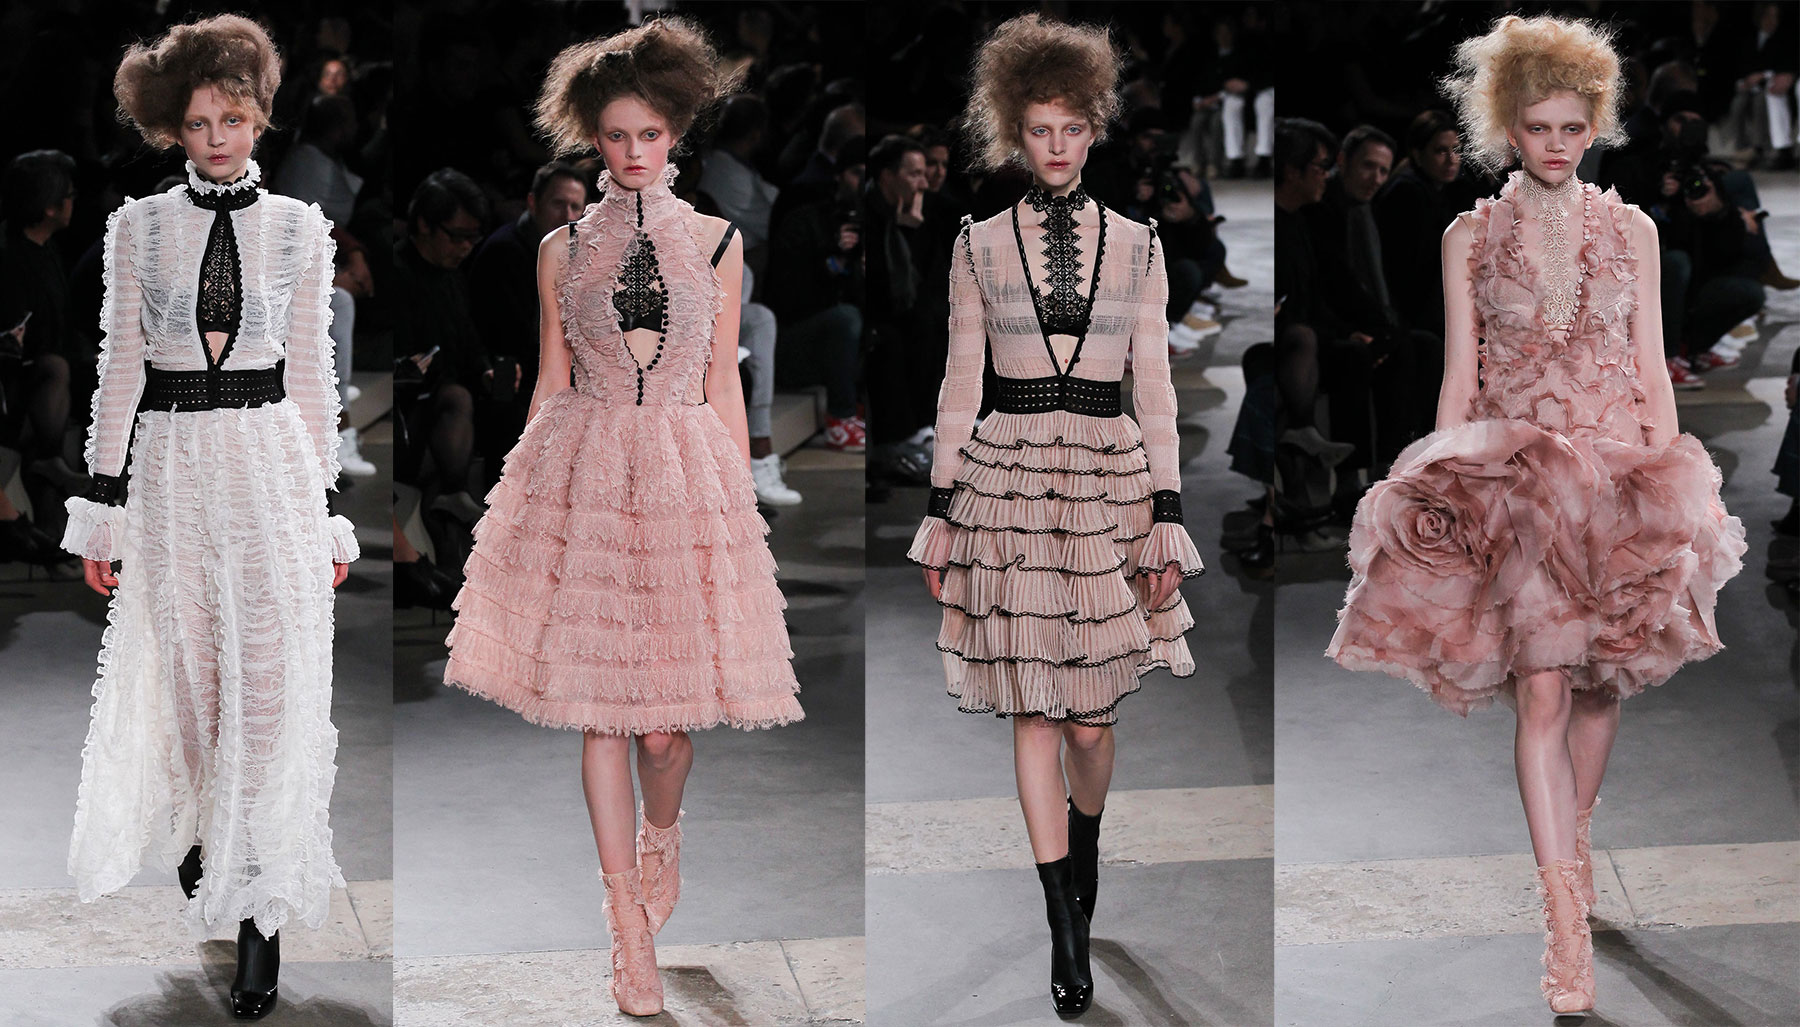 Alexander McQueen Fall Winter 2015 2016 collection